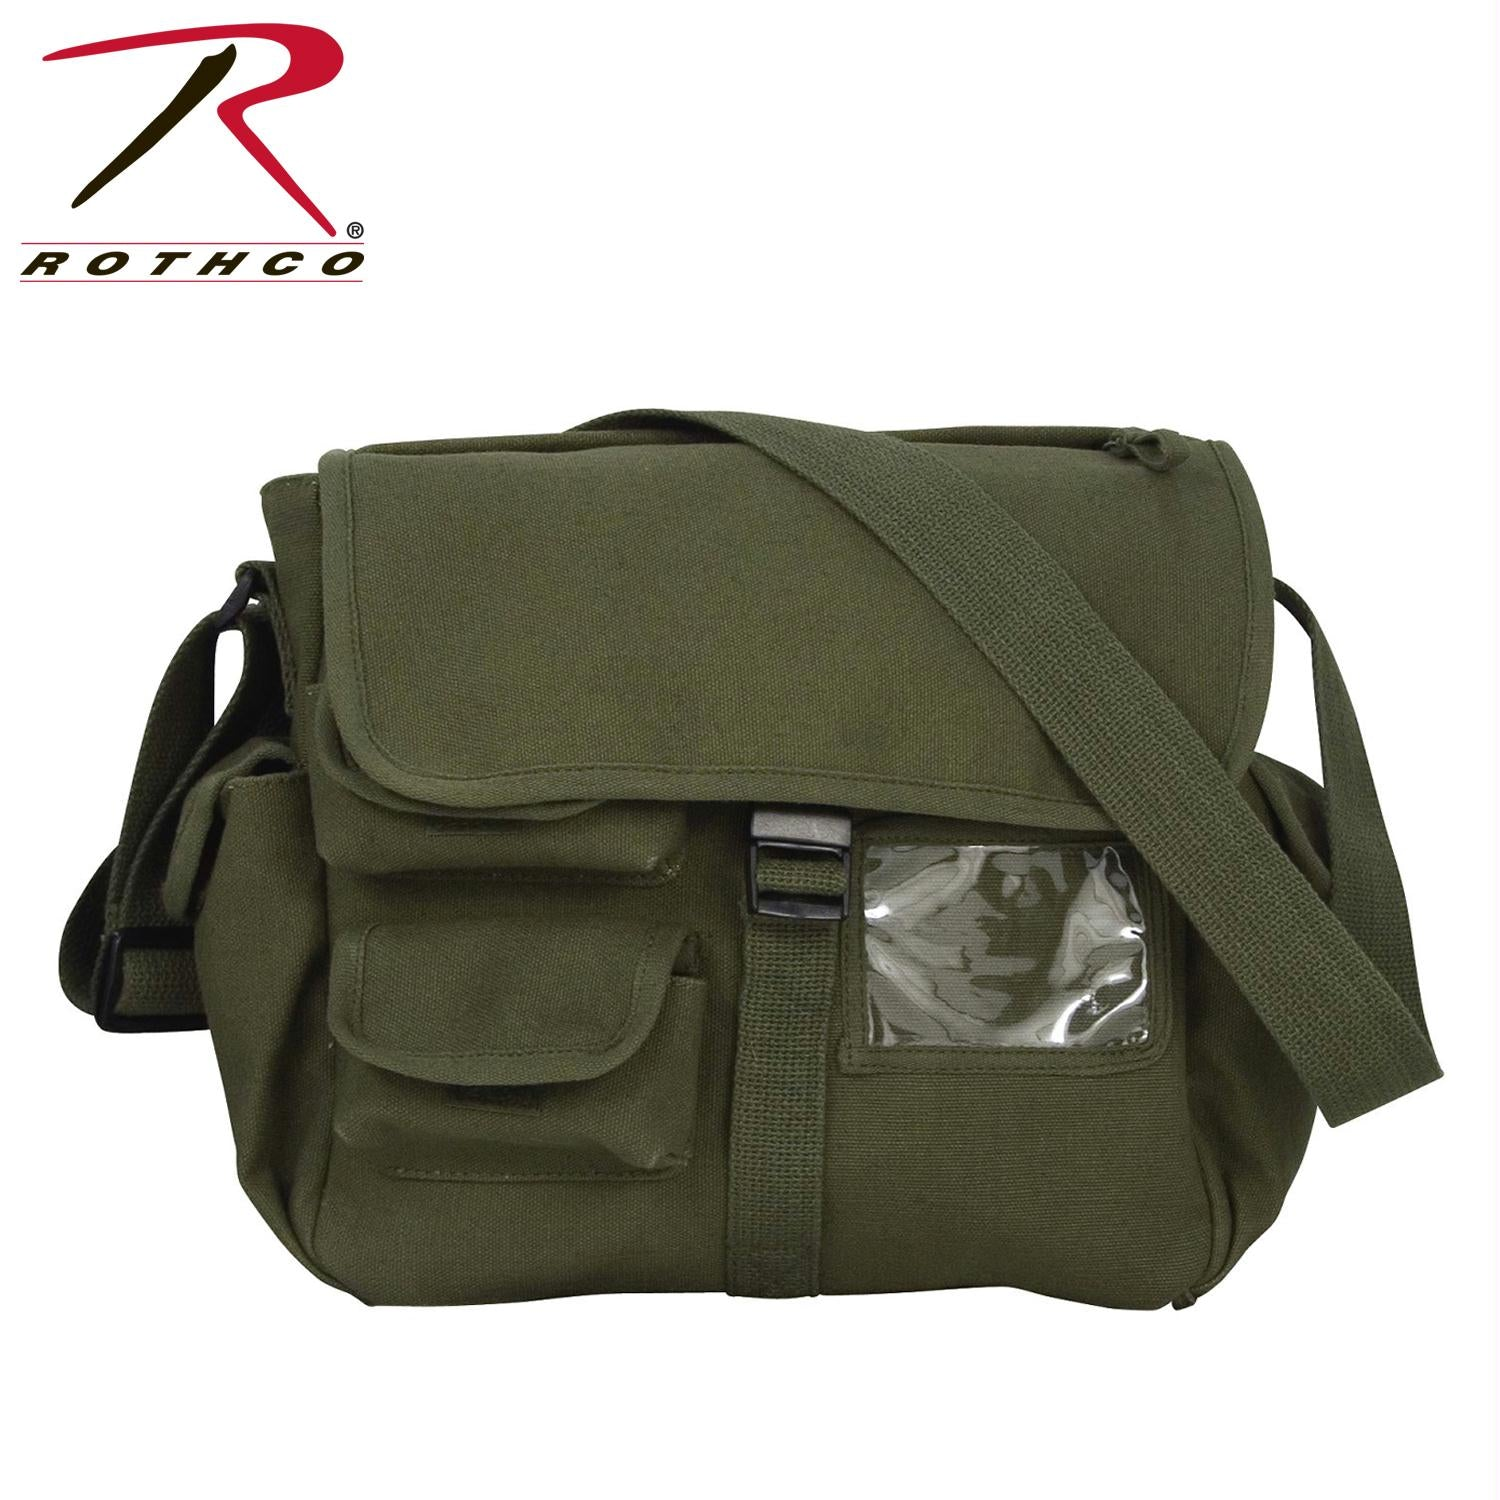 Rothco Canvas Urban Explorer Bag - Olive Drab